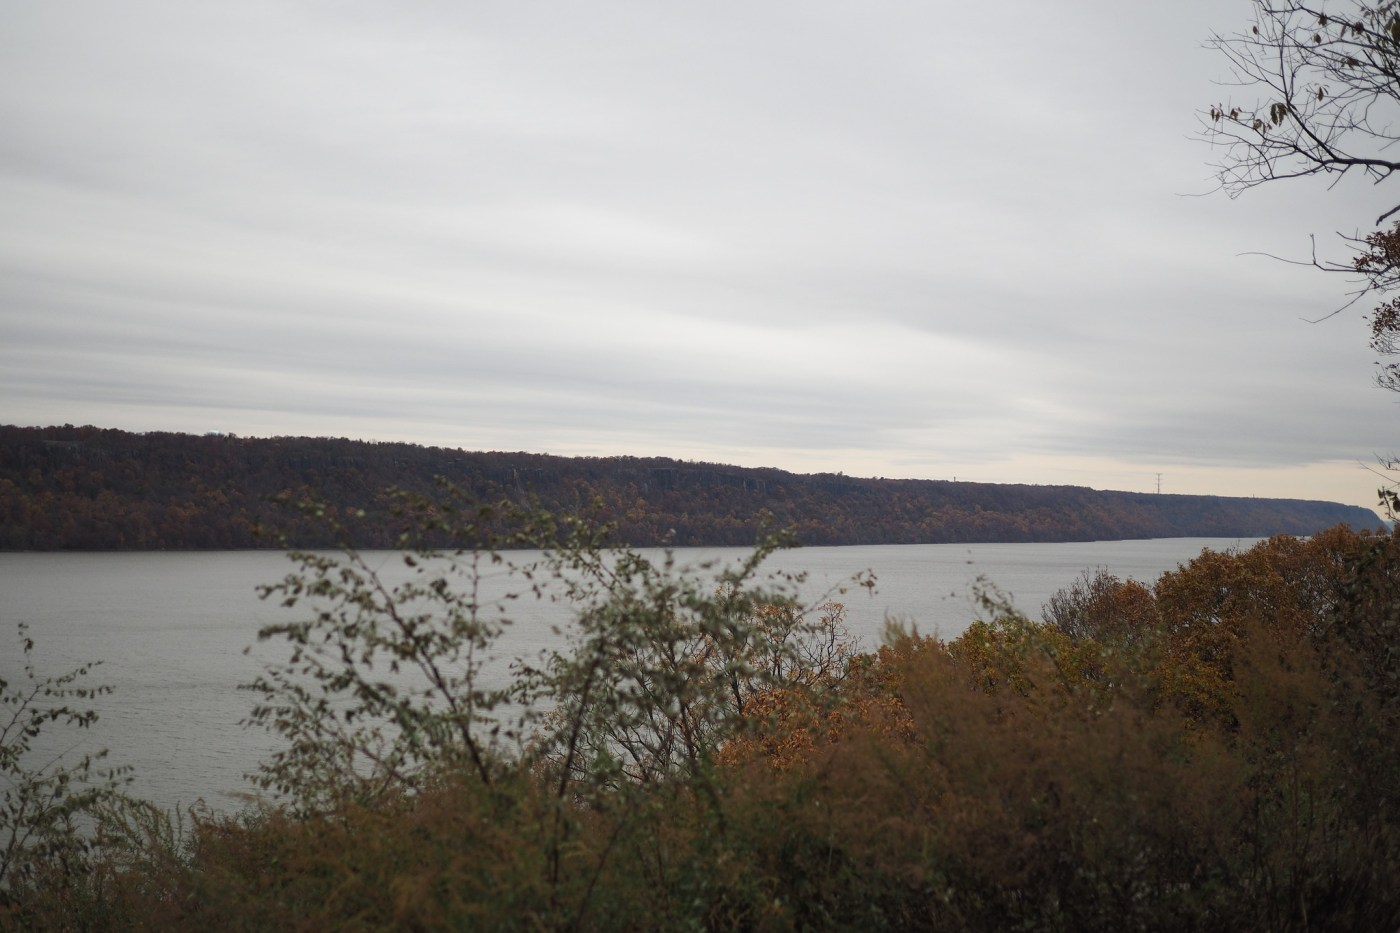 Scenic Hudson River Overlook at Inwood Hill